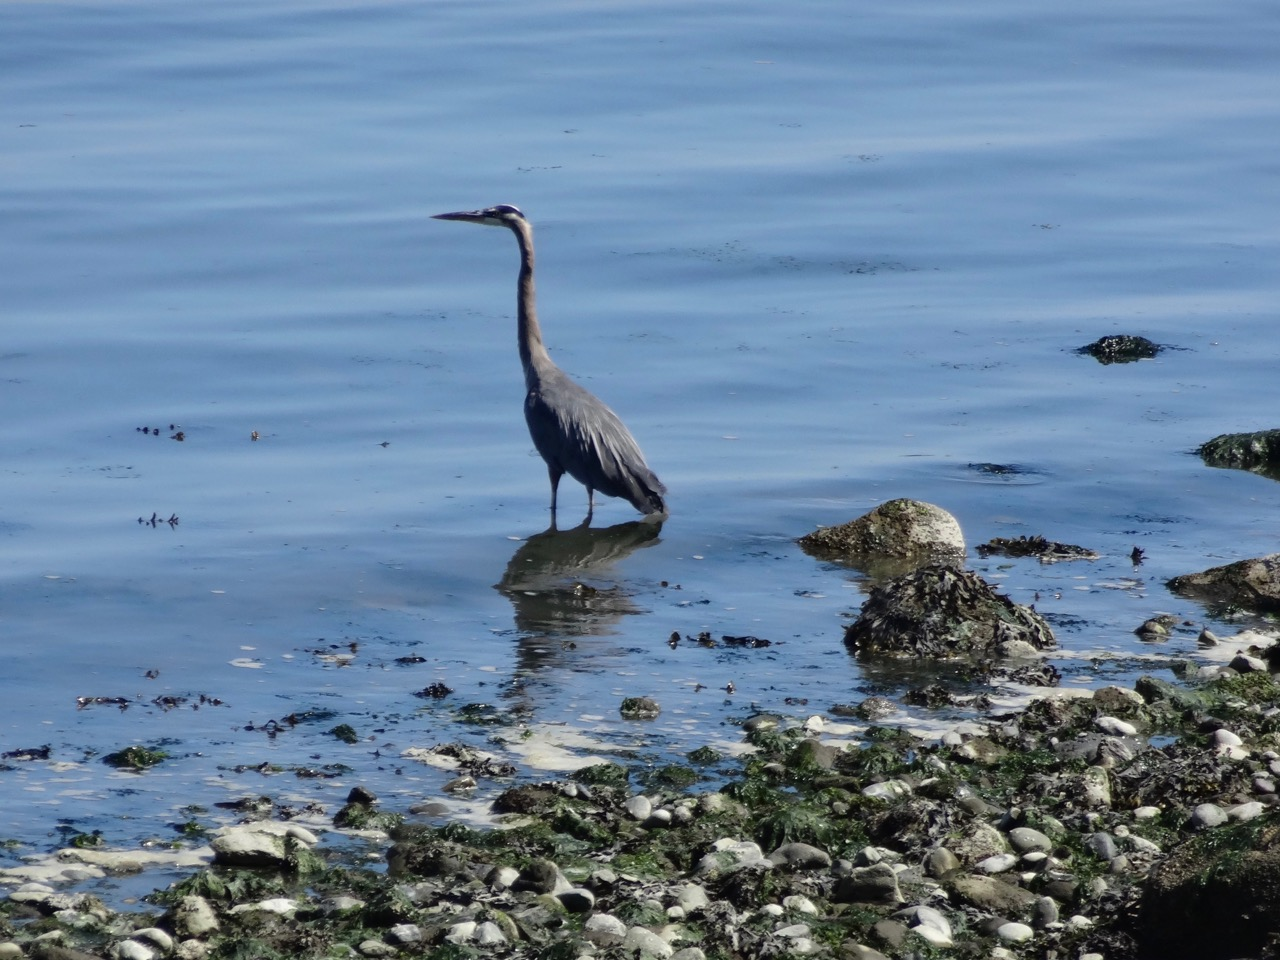 Great Blue Heron fishing in Guemes Channel